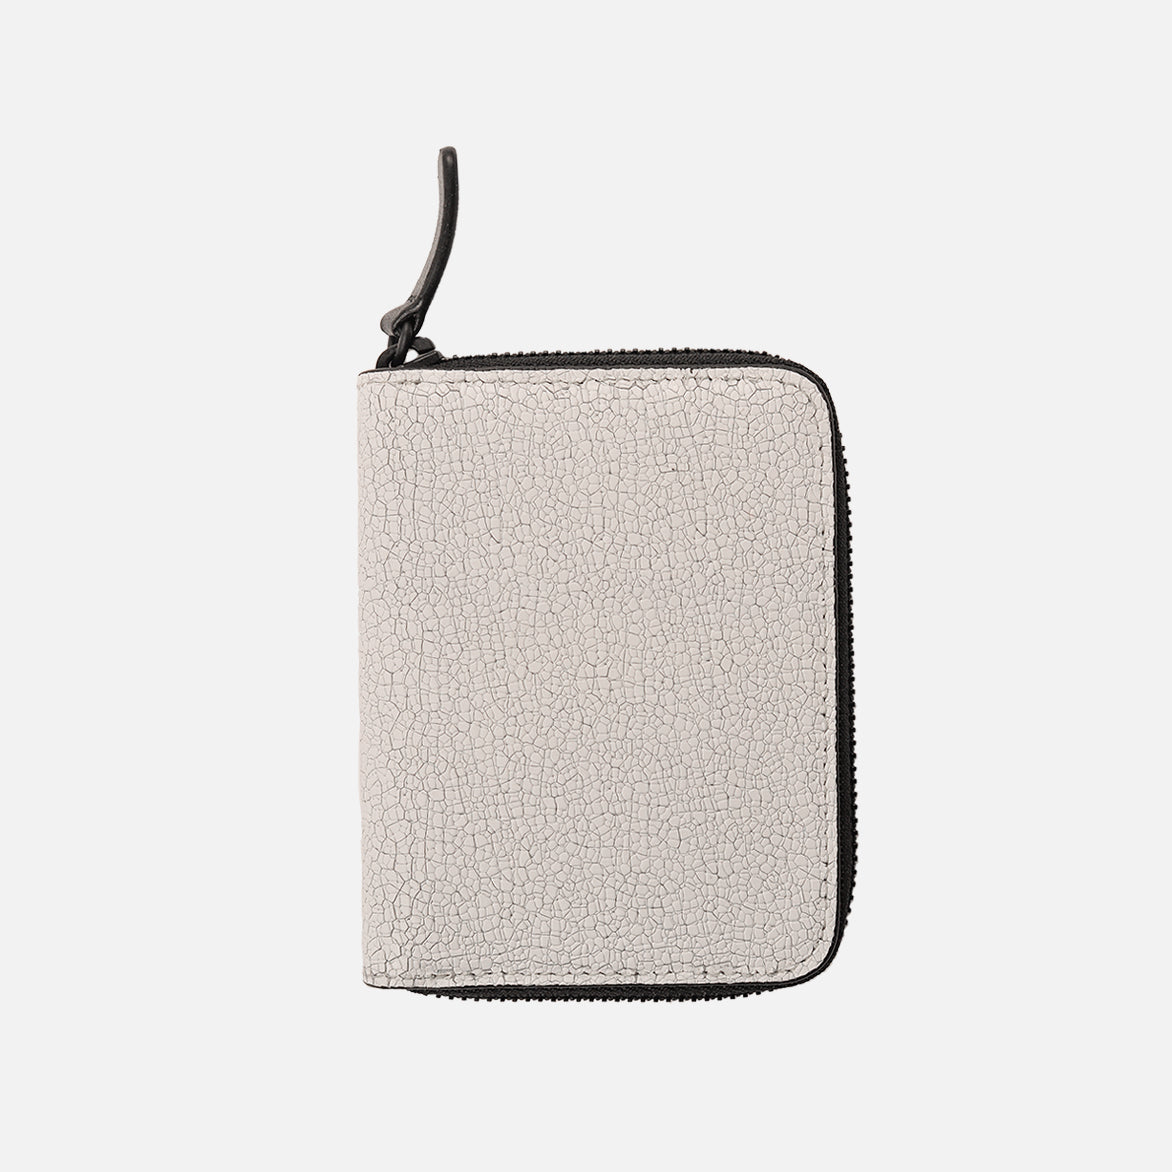 CRACKED LEATHER ZIP COIN CASE - WHITE